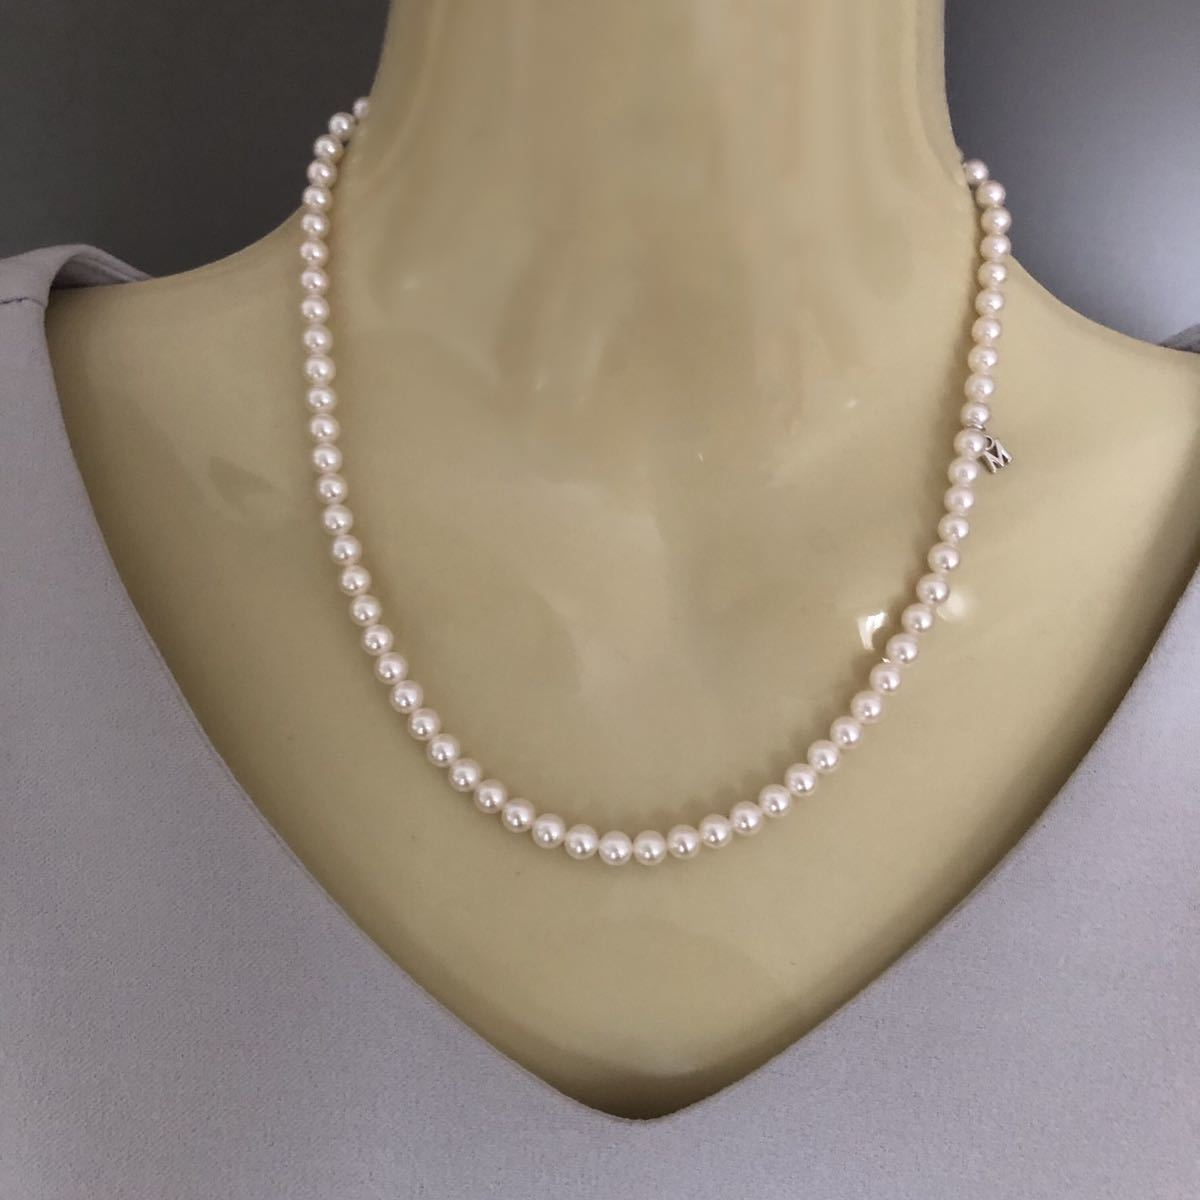 MIKIMOTO ミキモト アコヤパールネックレス SIL 5mm_画像8